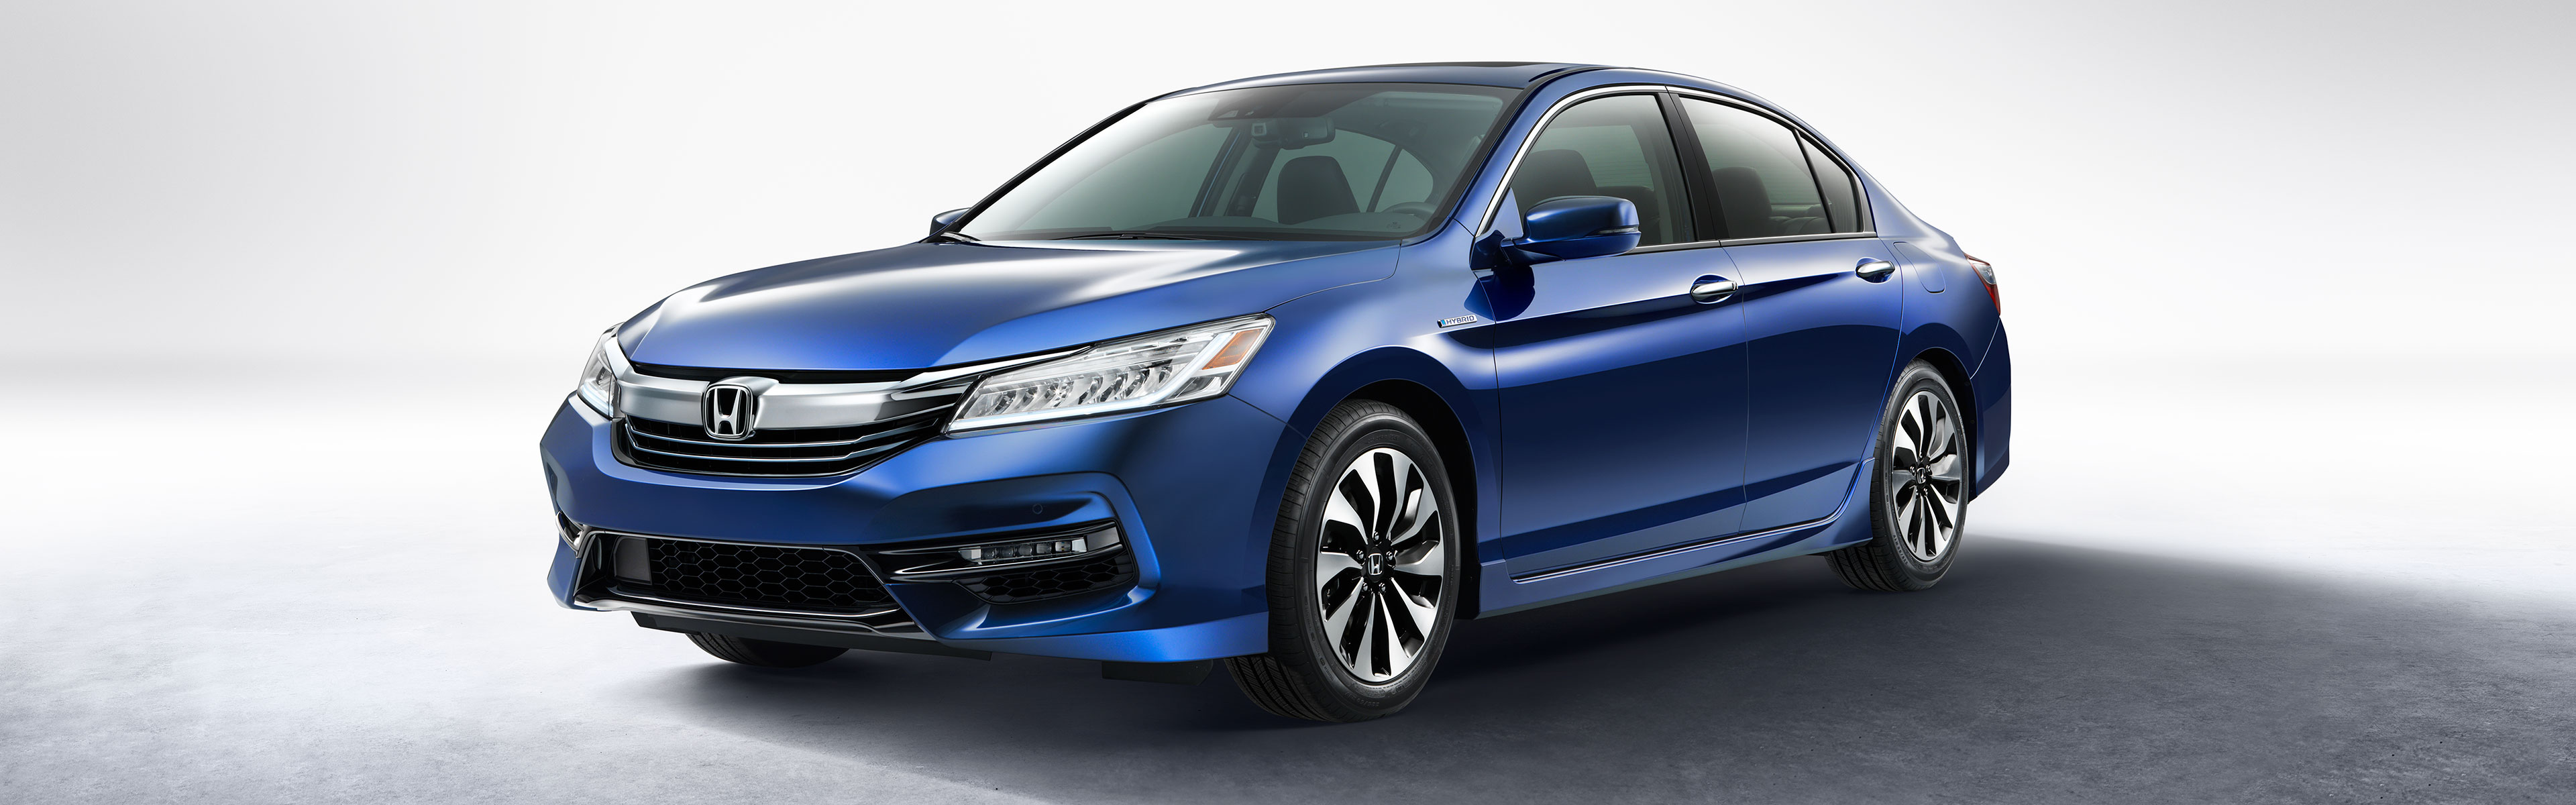 Image of the front of the Hybrid.